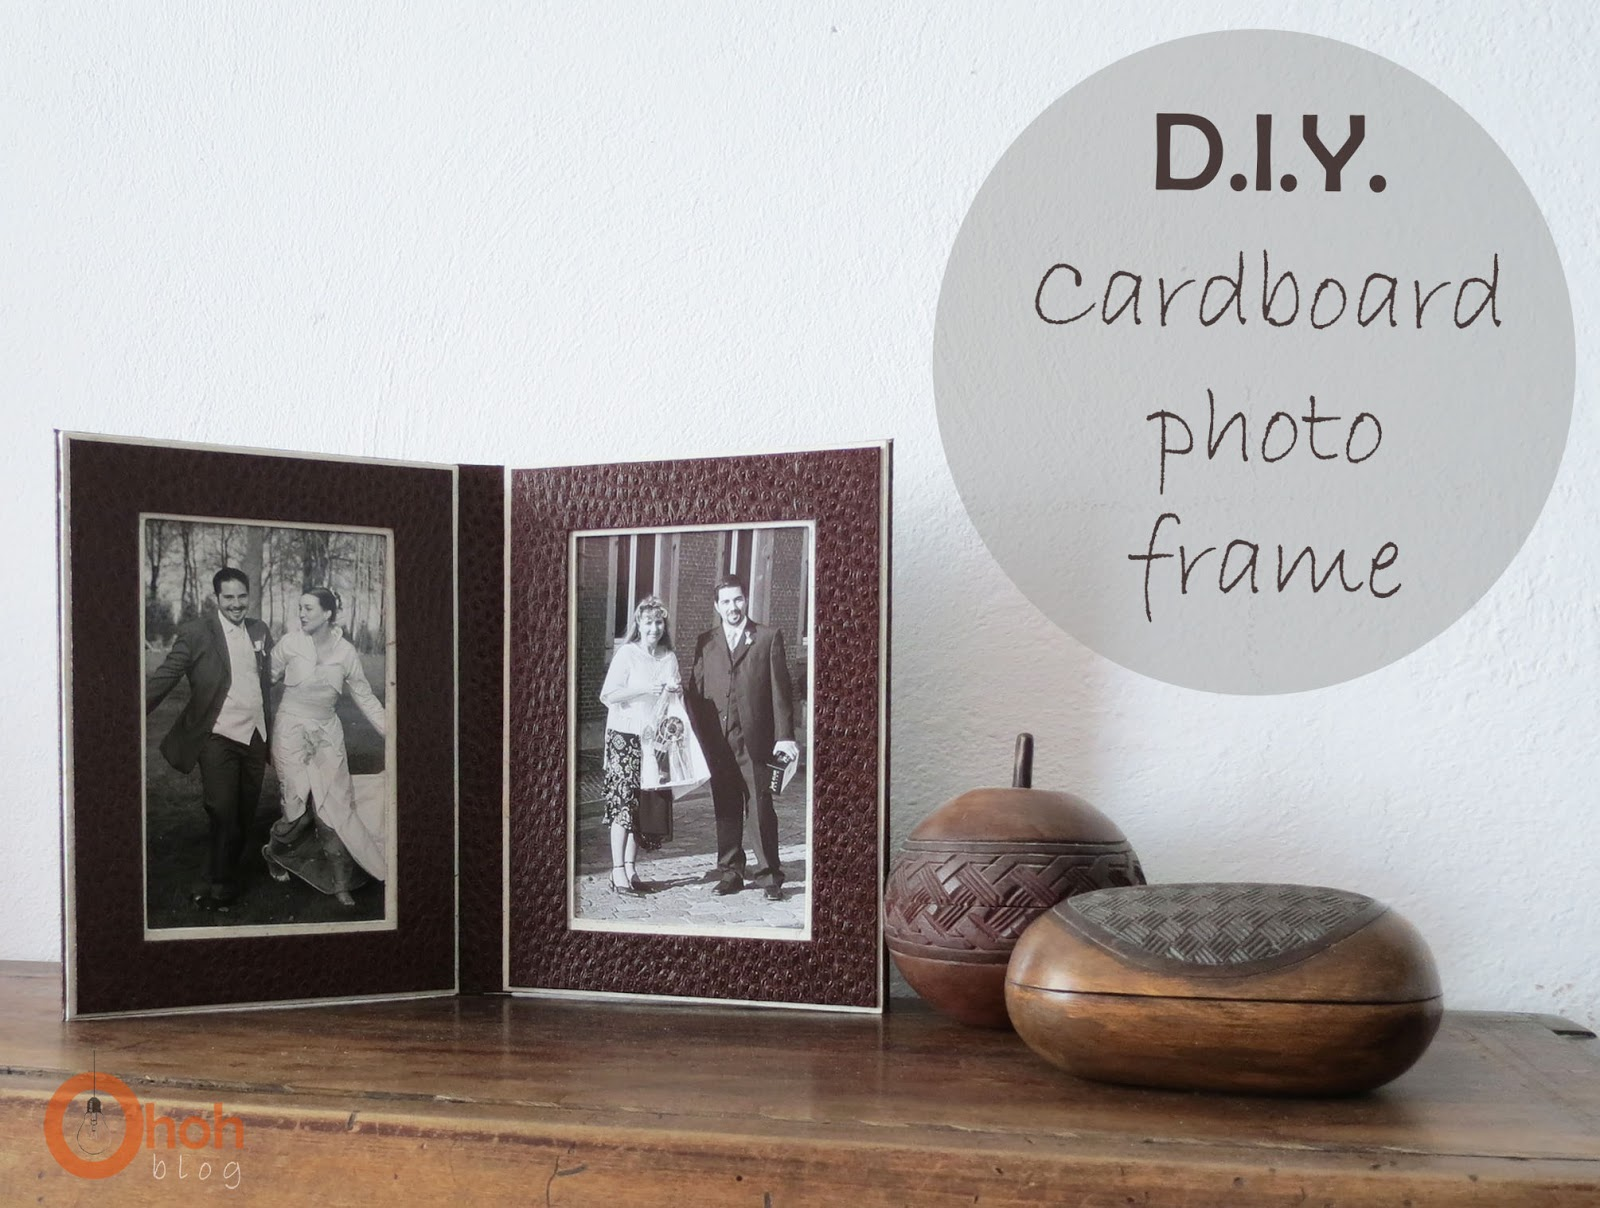 Diy cardboard photo frame ohoh blog diy cardboard photo frame jeuxipadfo Choice Image